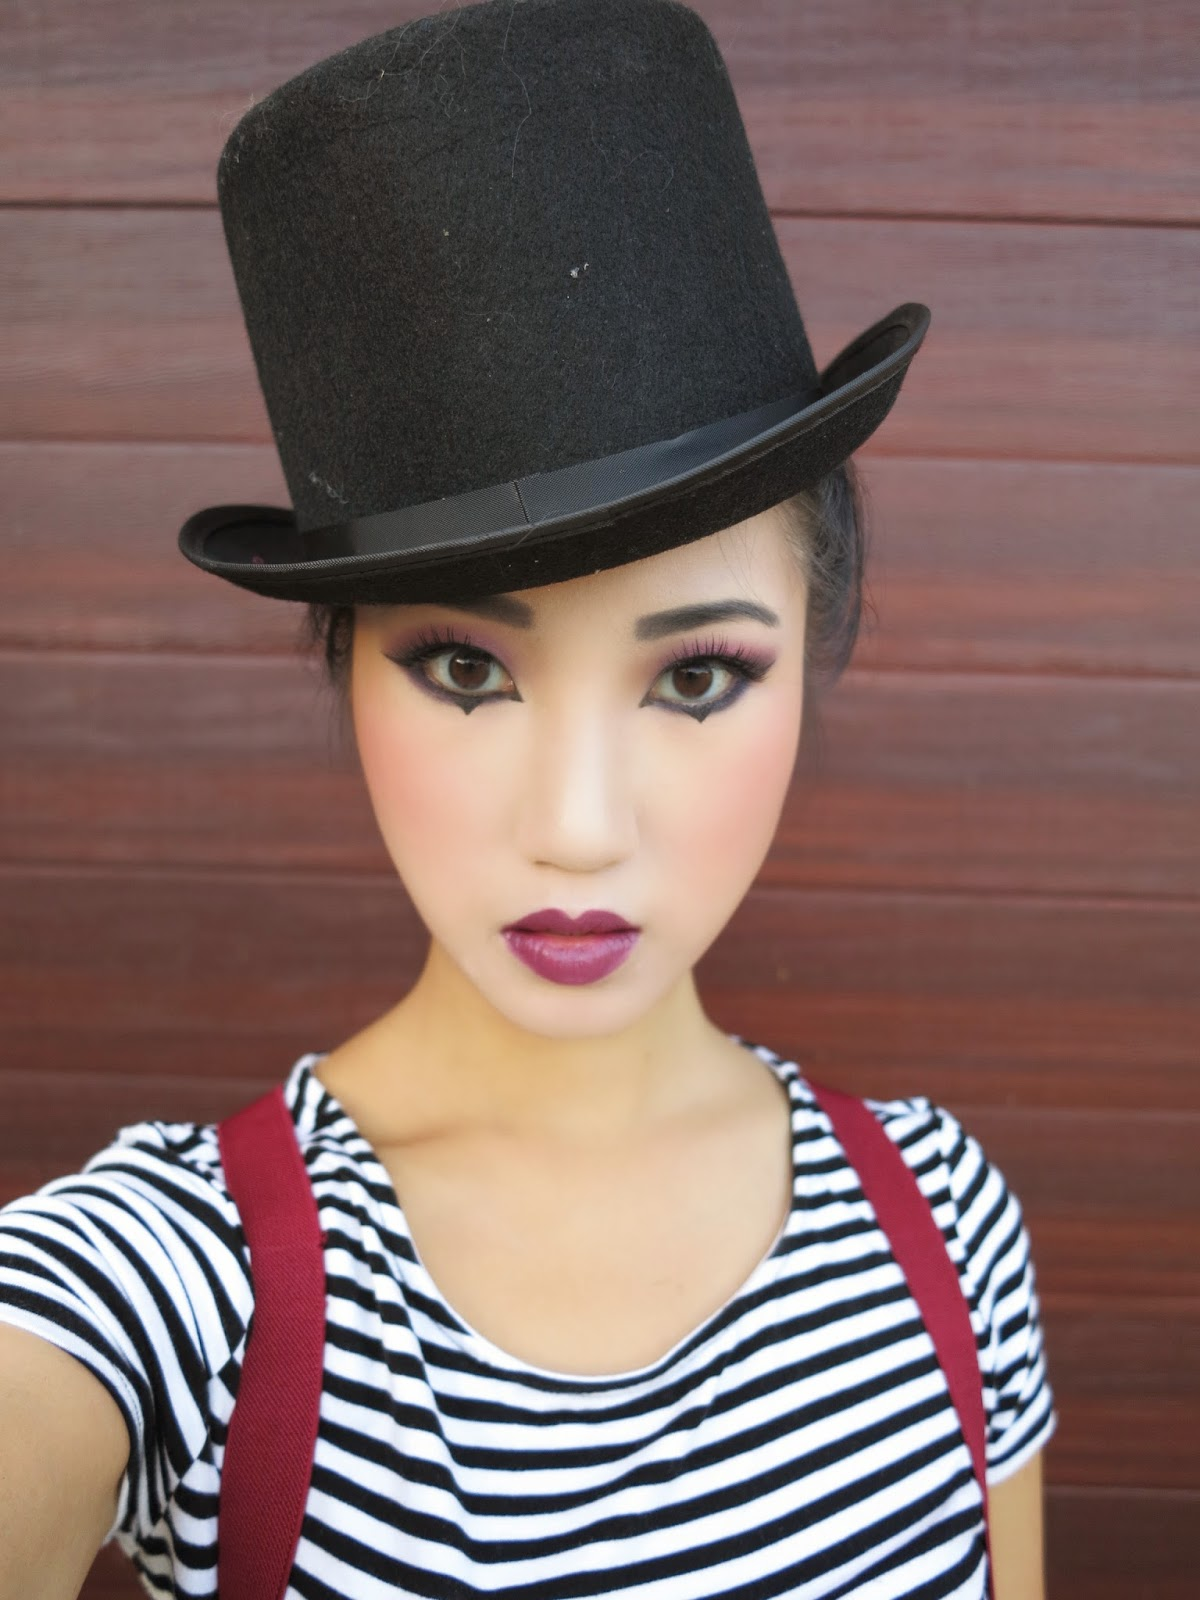 KimKine.com Mime Makeup And Costume